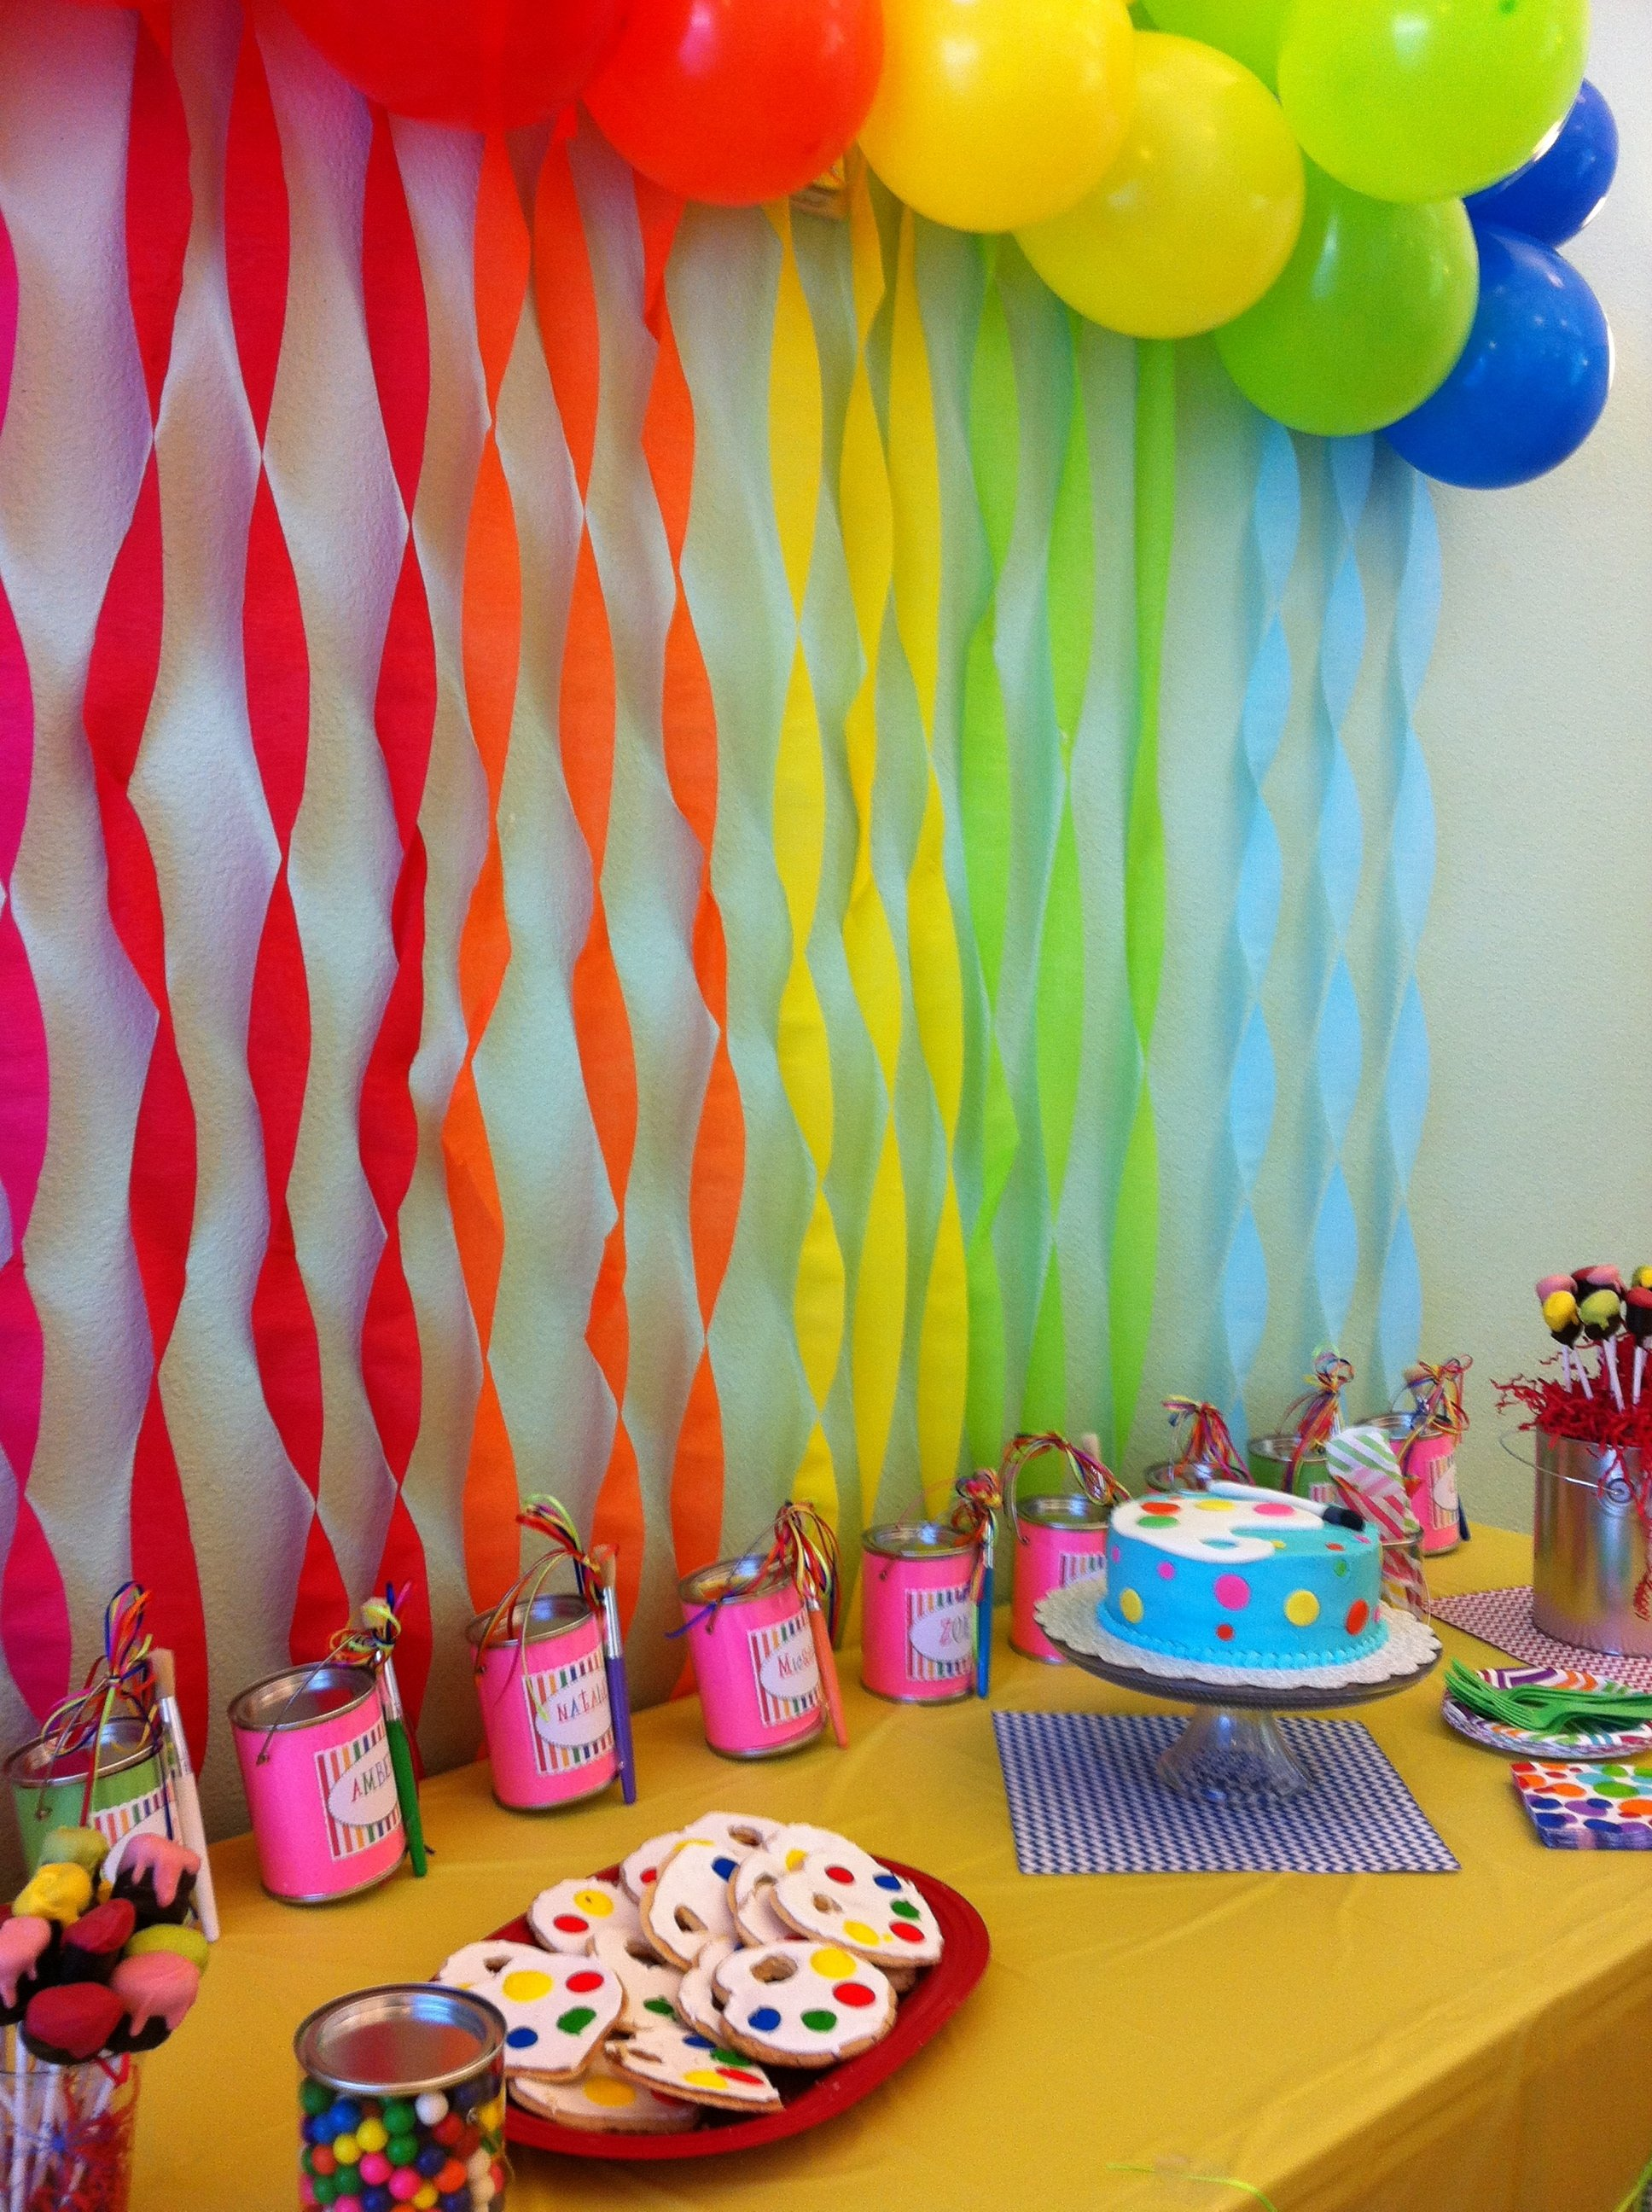 10 Beautiful Ideas For 3 Year Old Birthday Party 8 year old girl birthday art party pinterest fresh ideas for 7 boy 7 2020